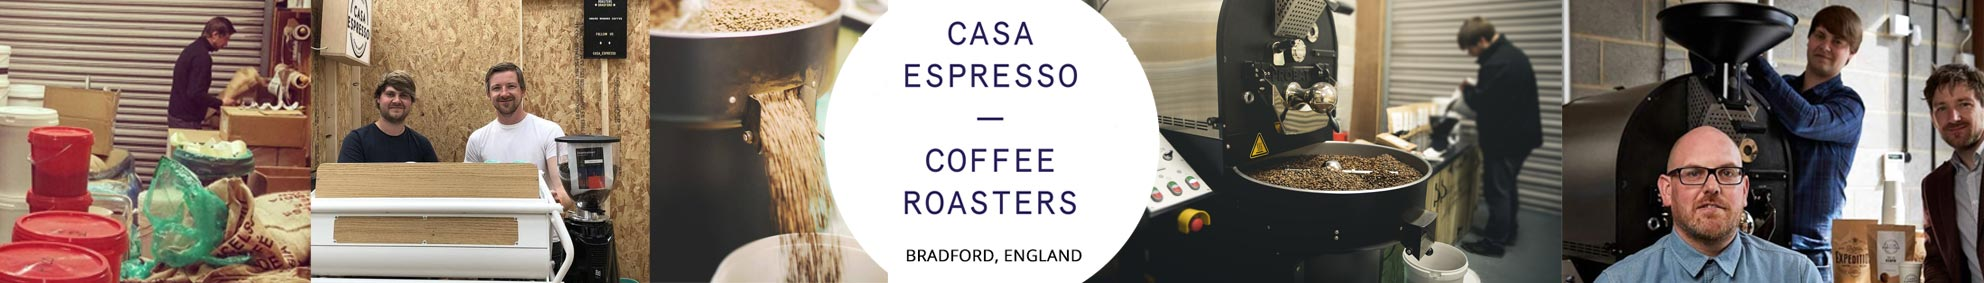 Casa Espresso Speciality Coffee Roasters on UK Best Subscription